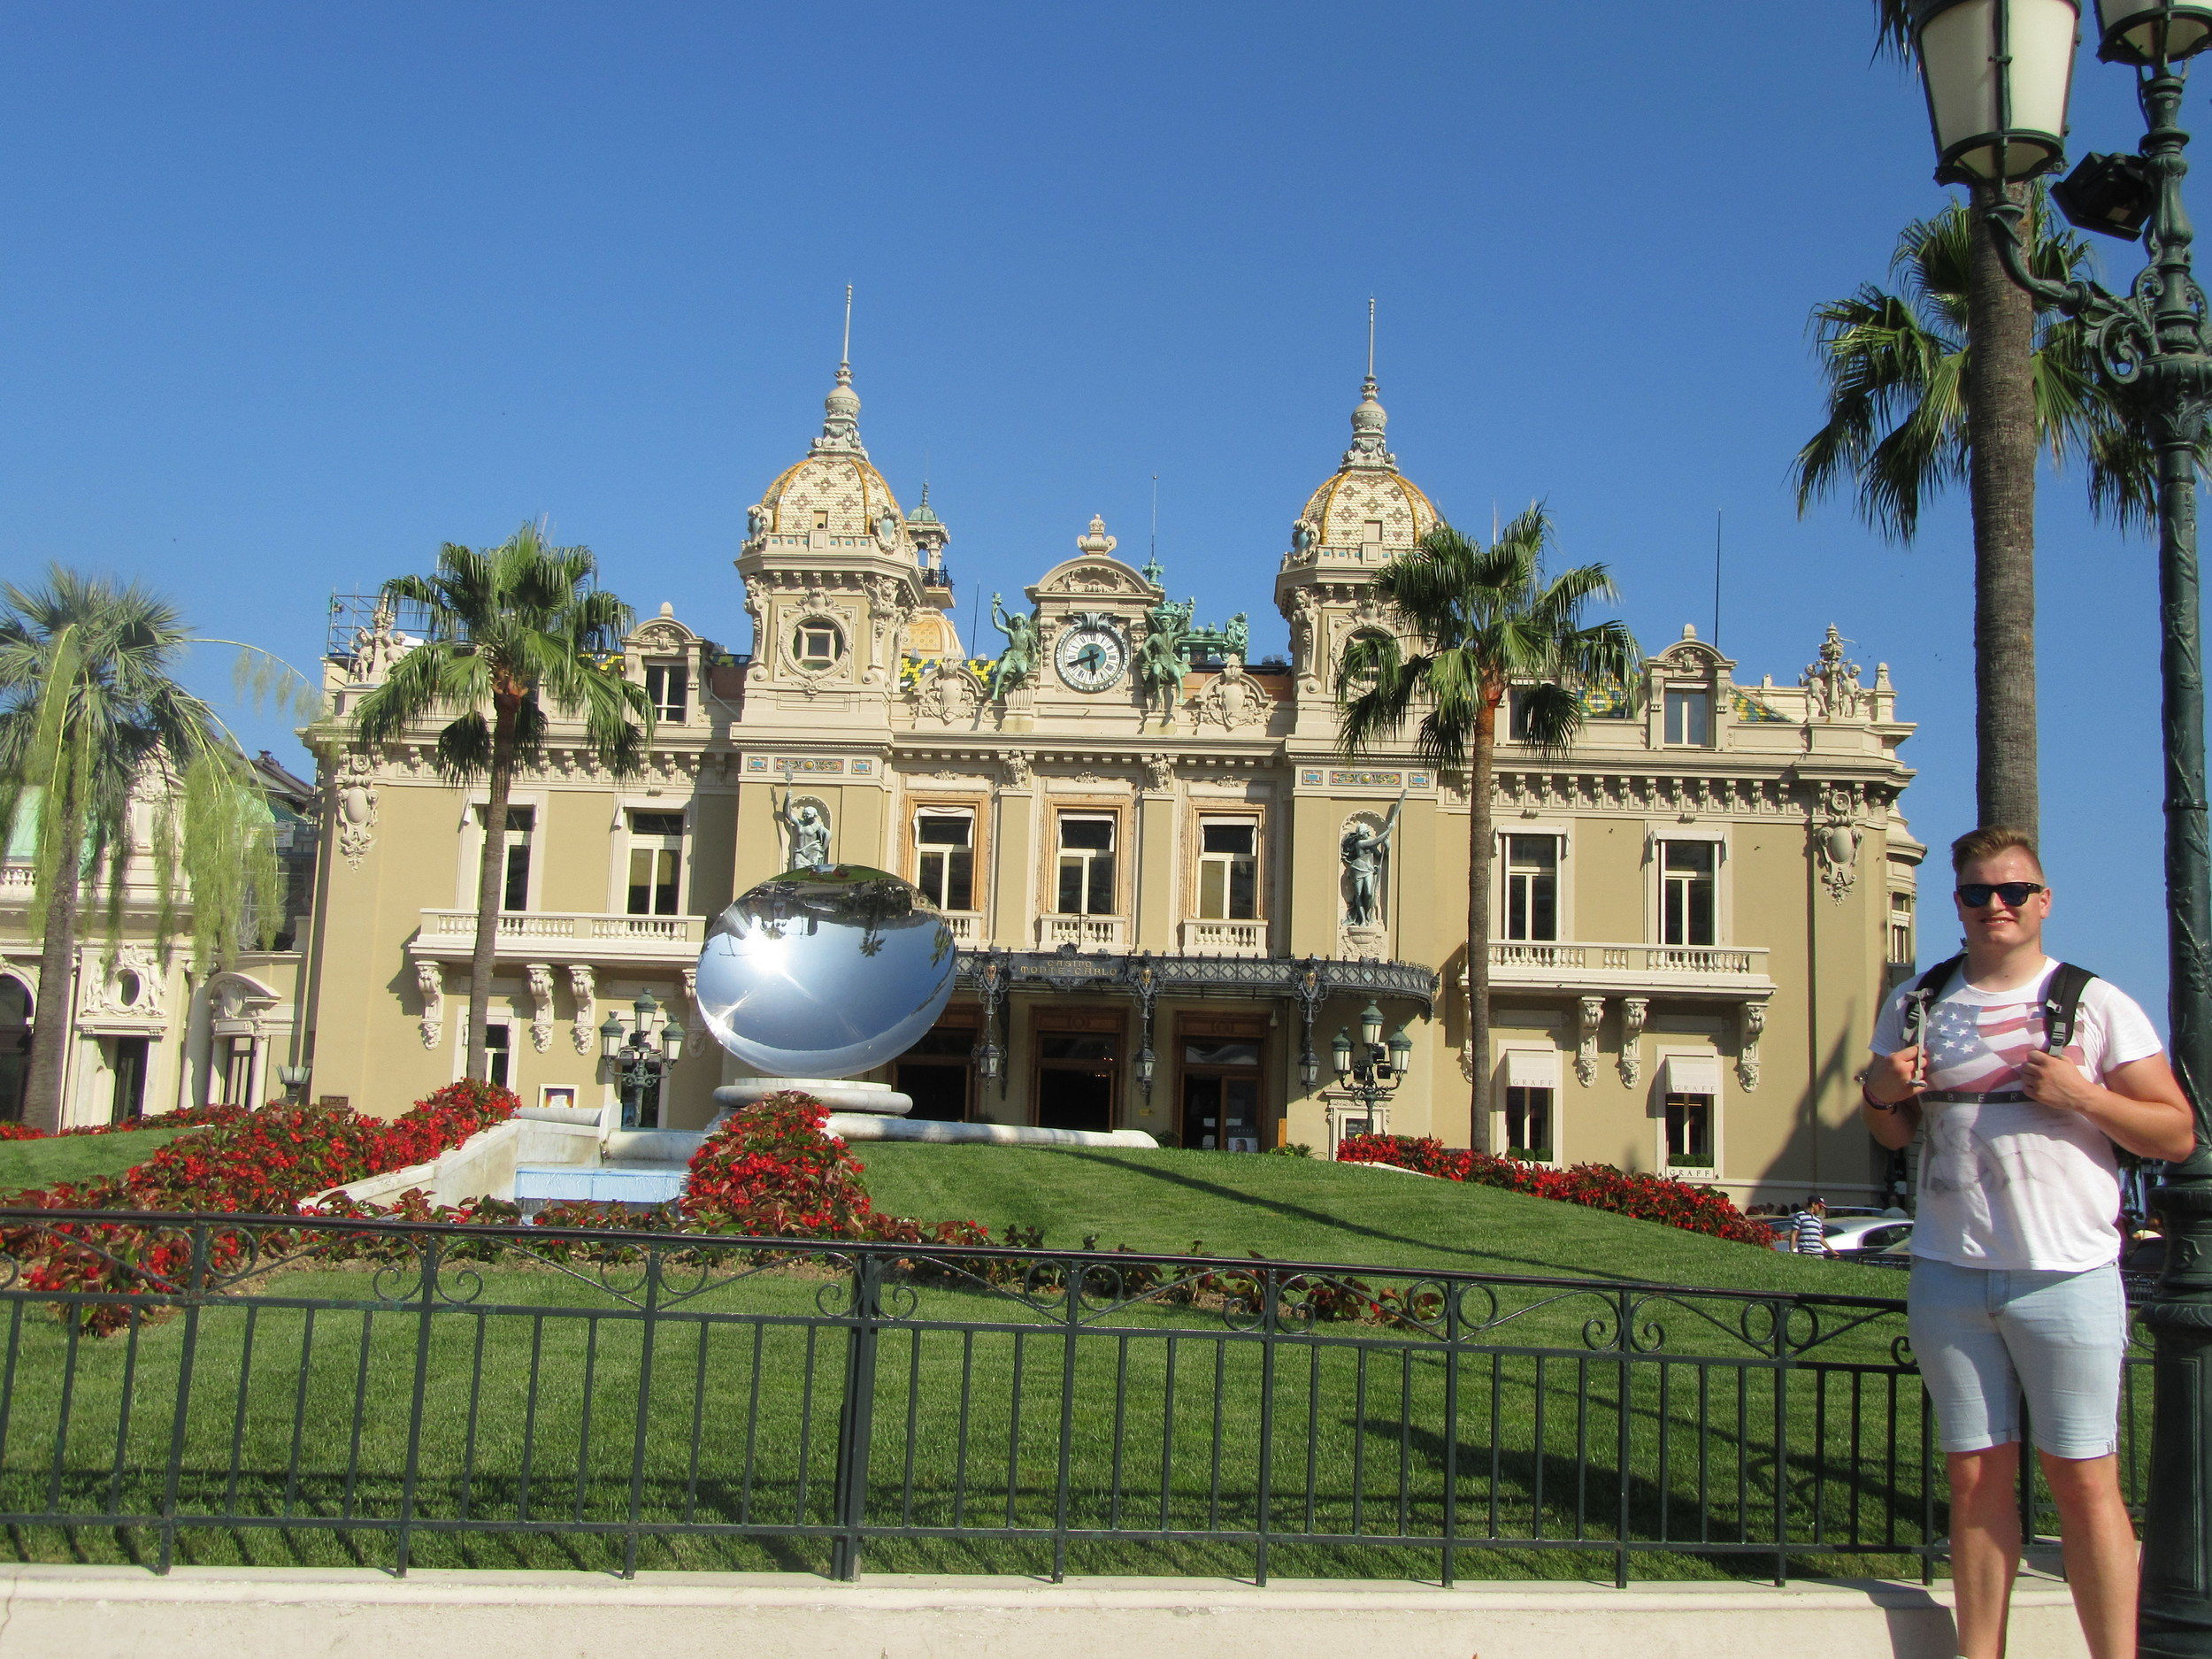 Stood in front of the world-famous Monte-Carlo Casino.